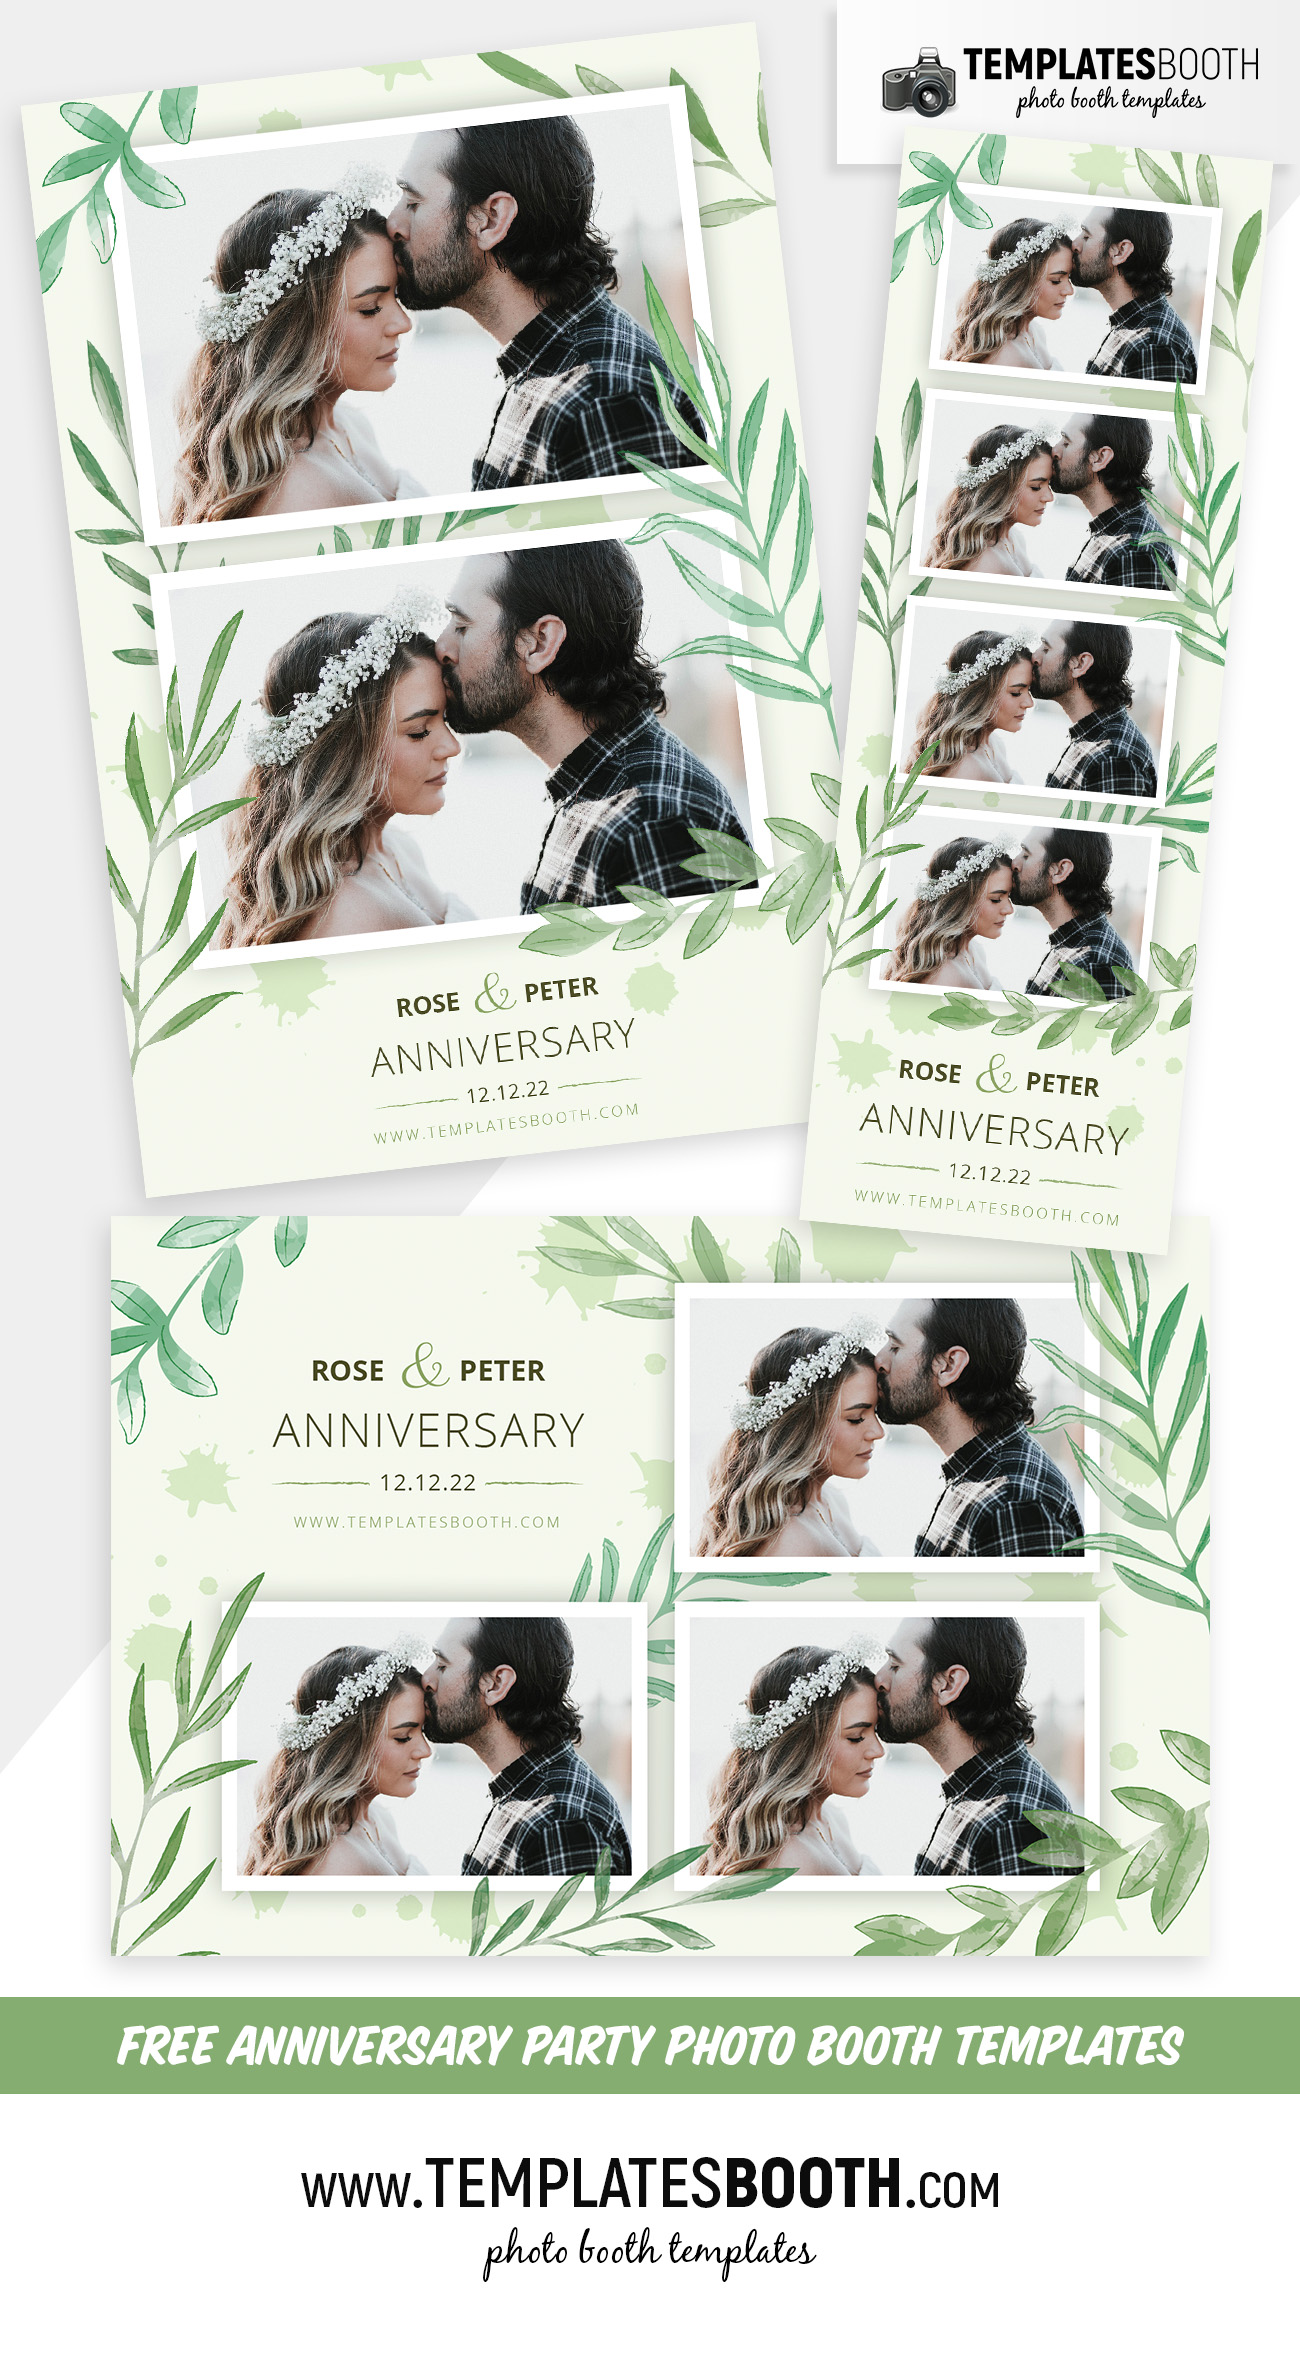 Free Anniversary Party Photo Booth Templates